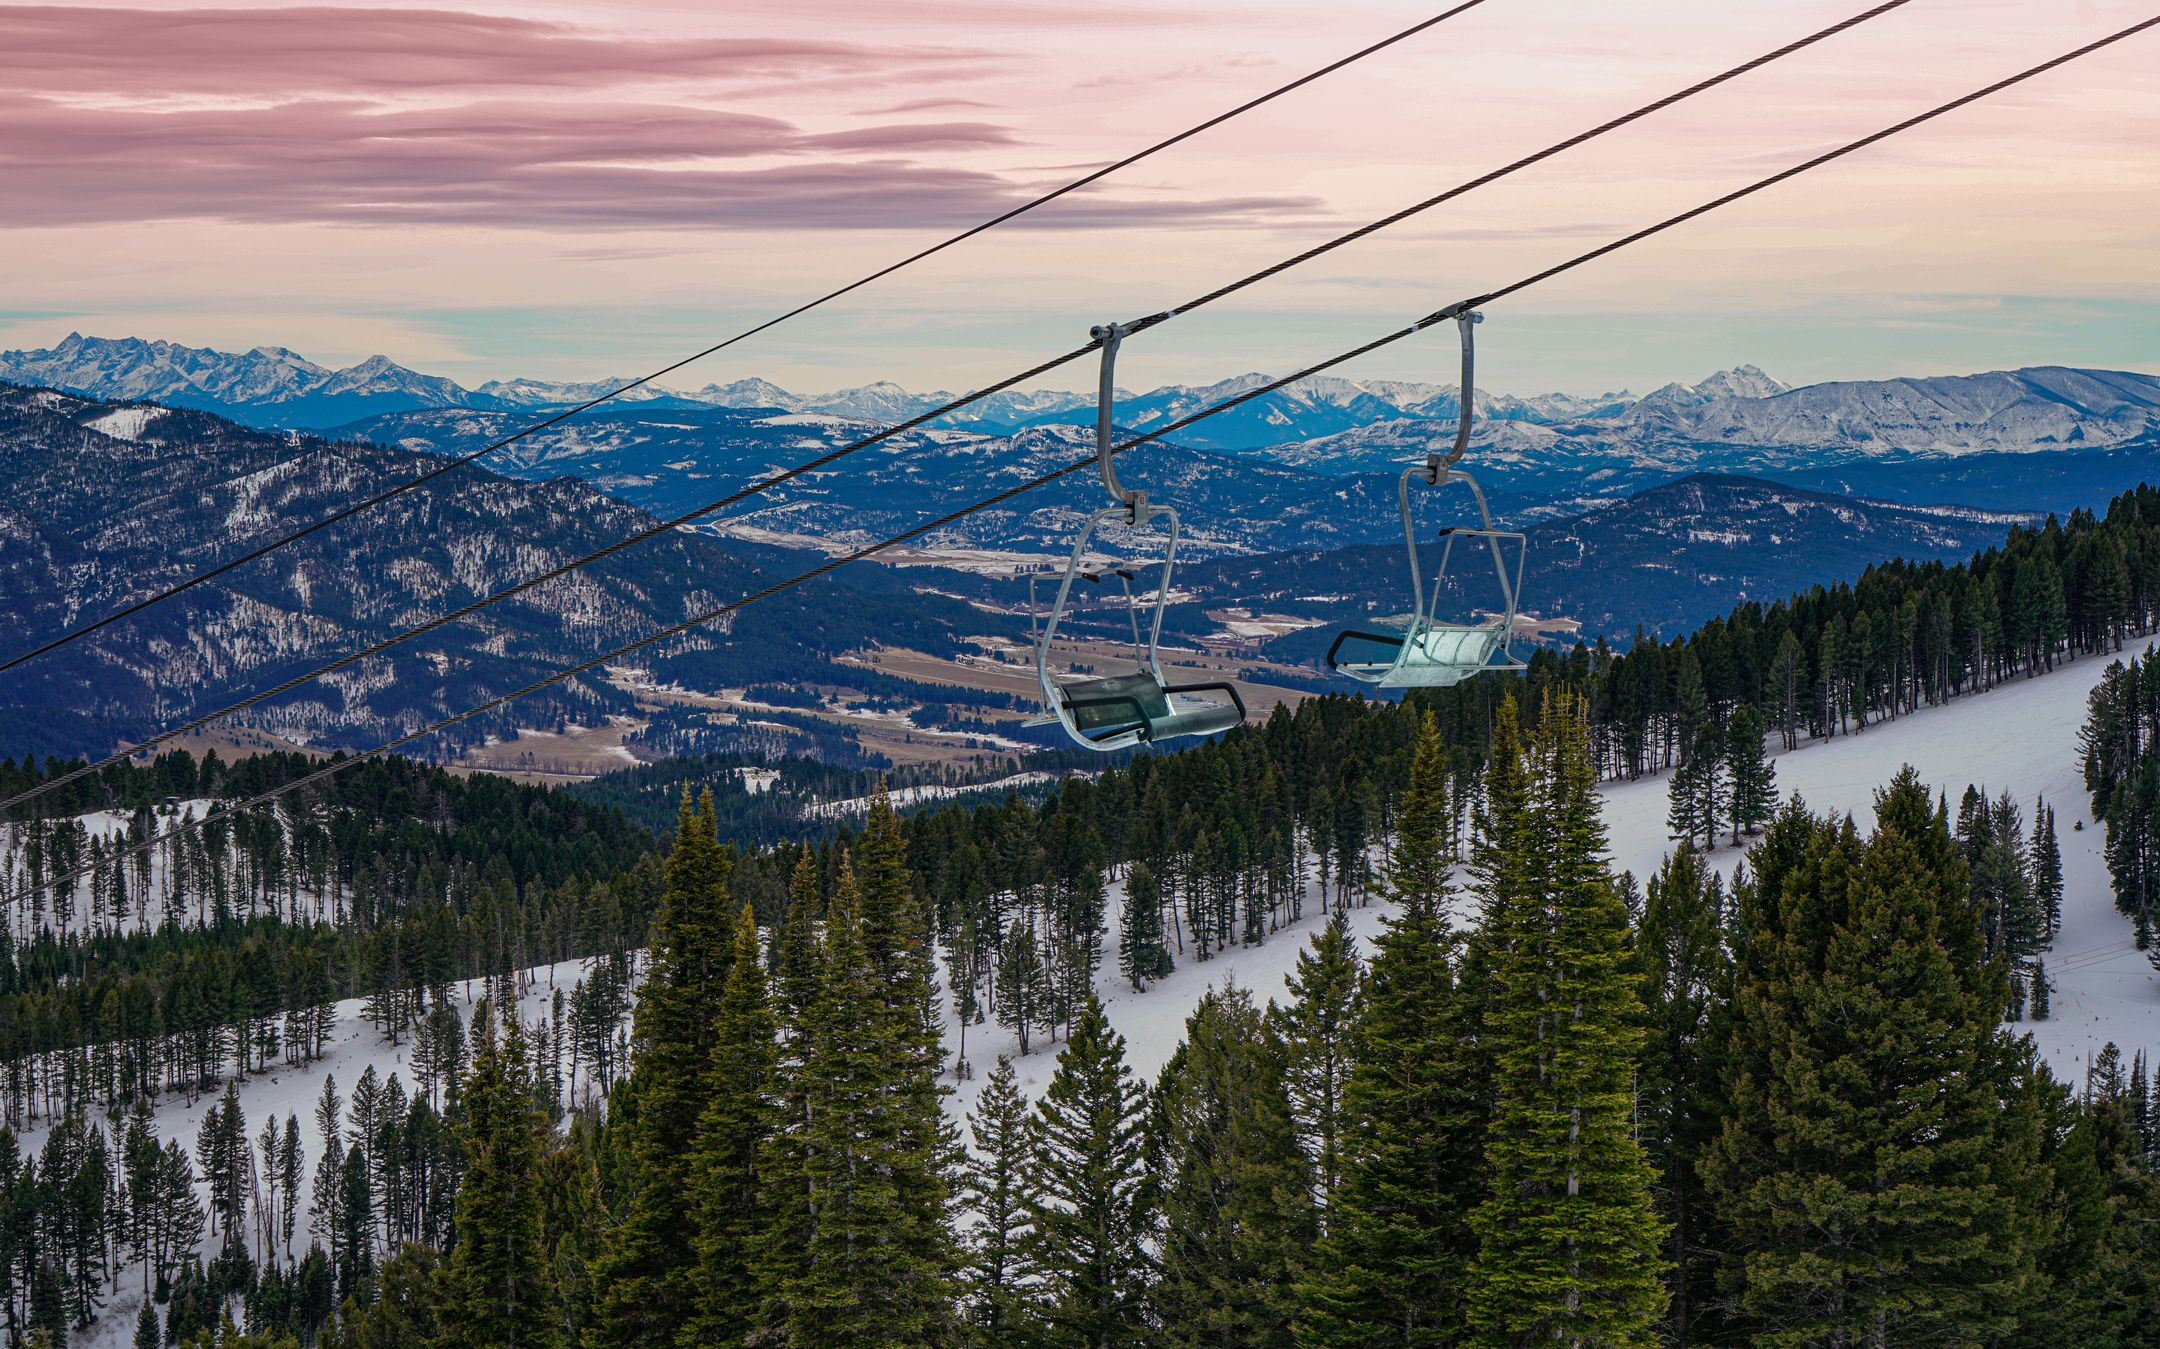 Skiing United States ski resort Bridger Bowl ripatrip travel big